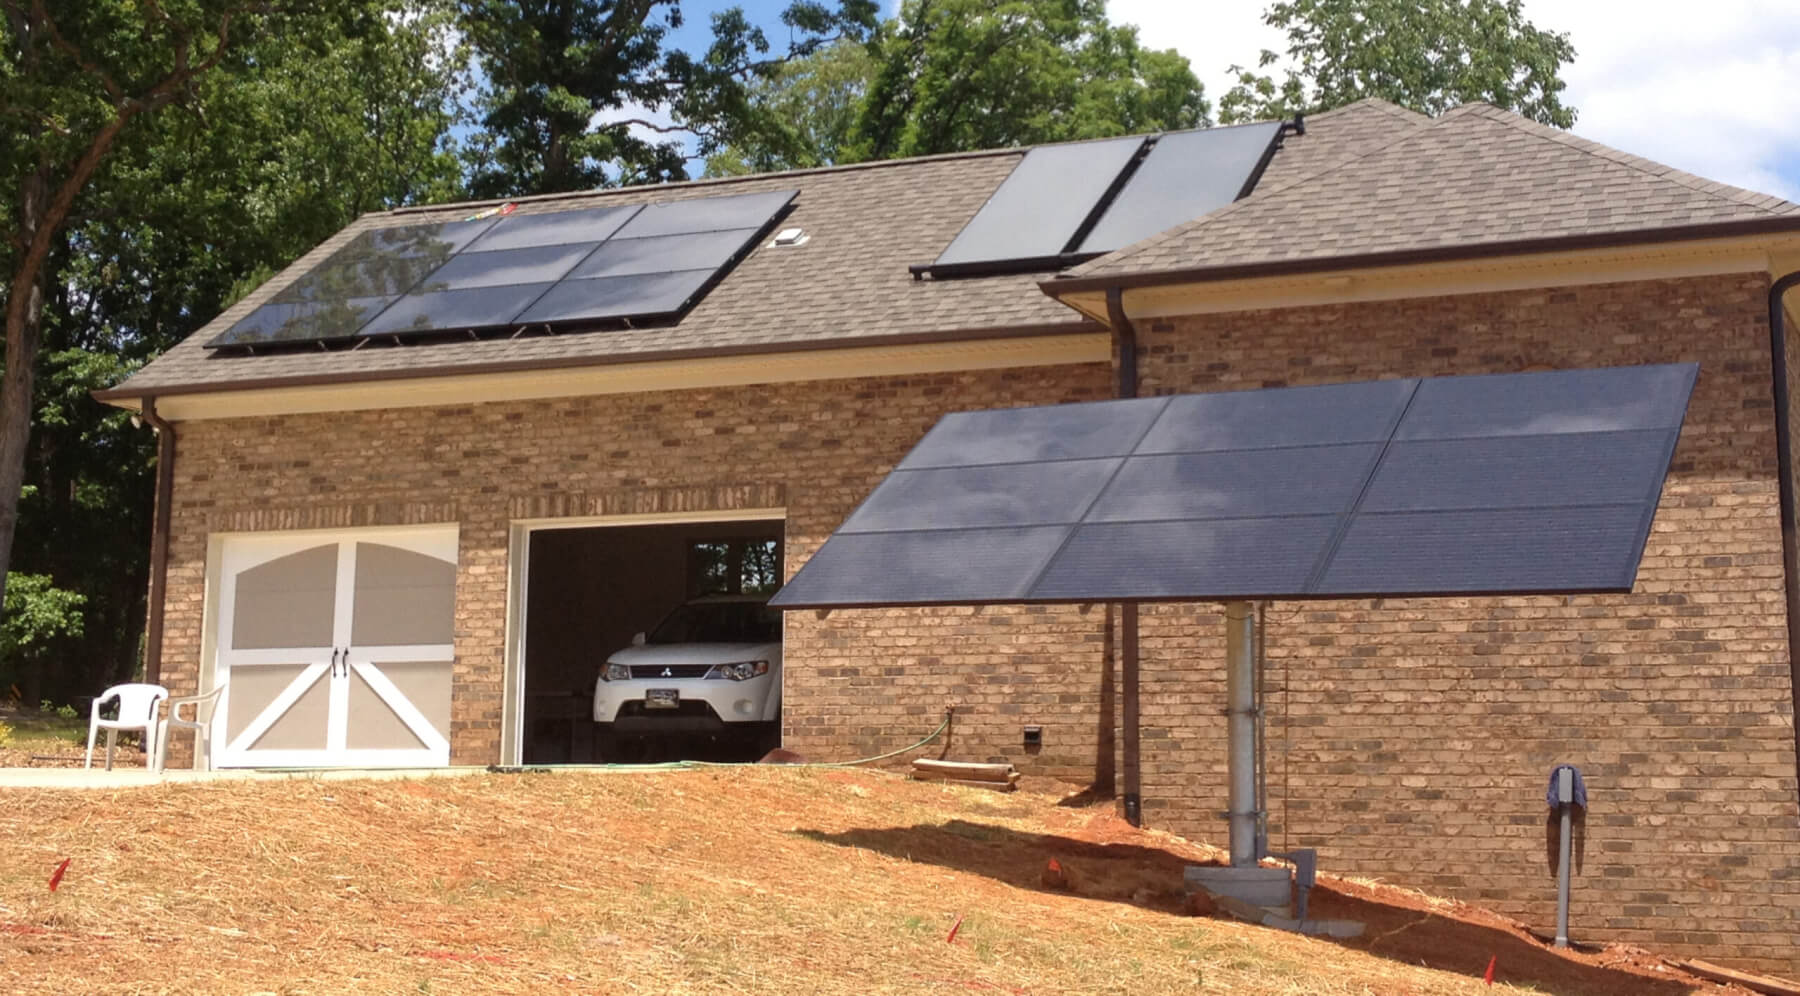 House garage with solar panels on the roof